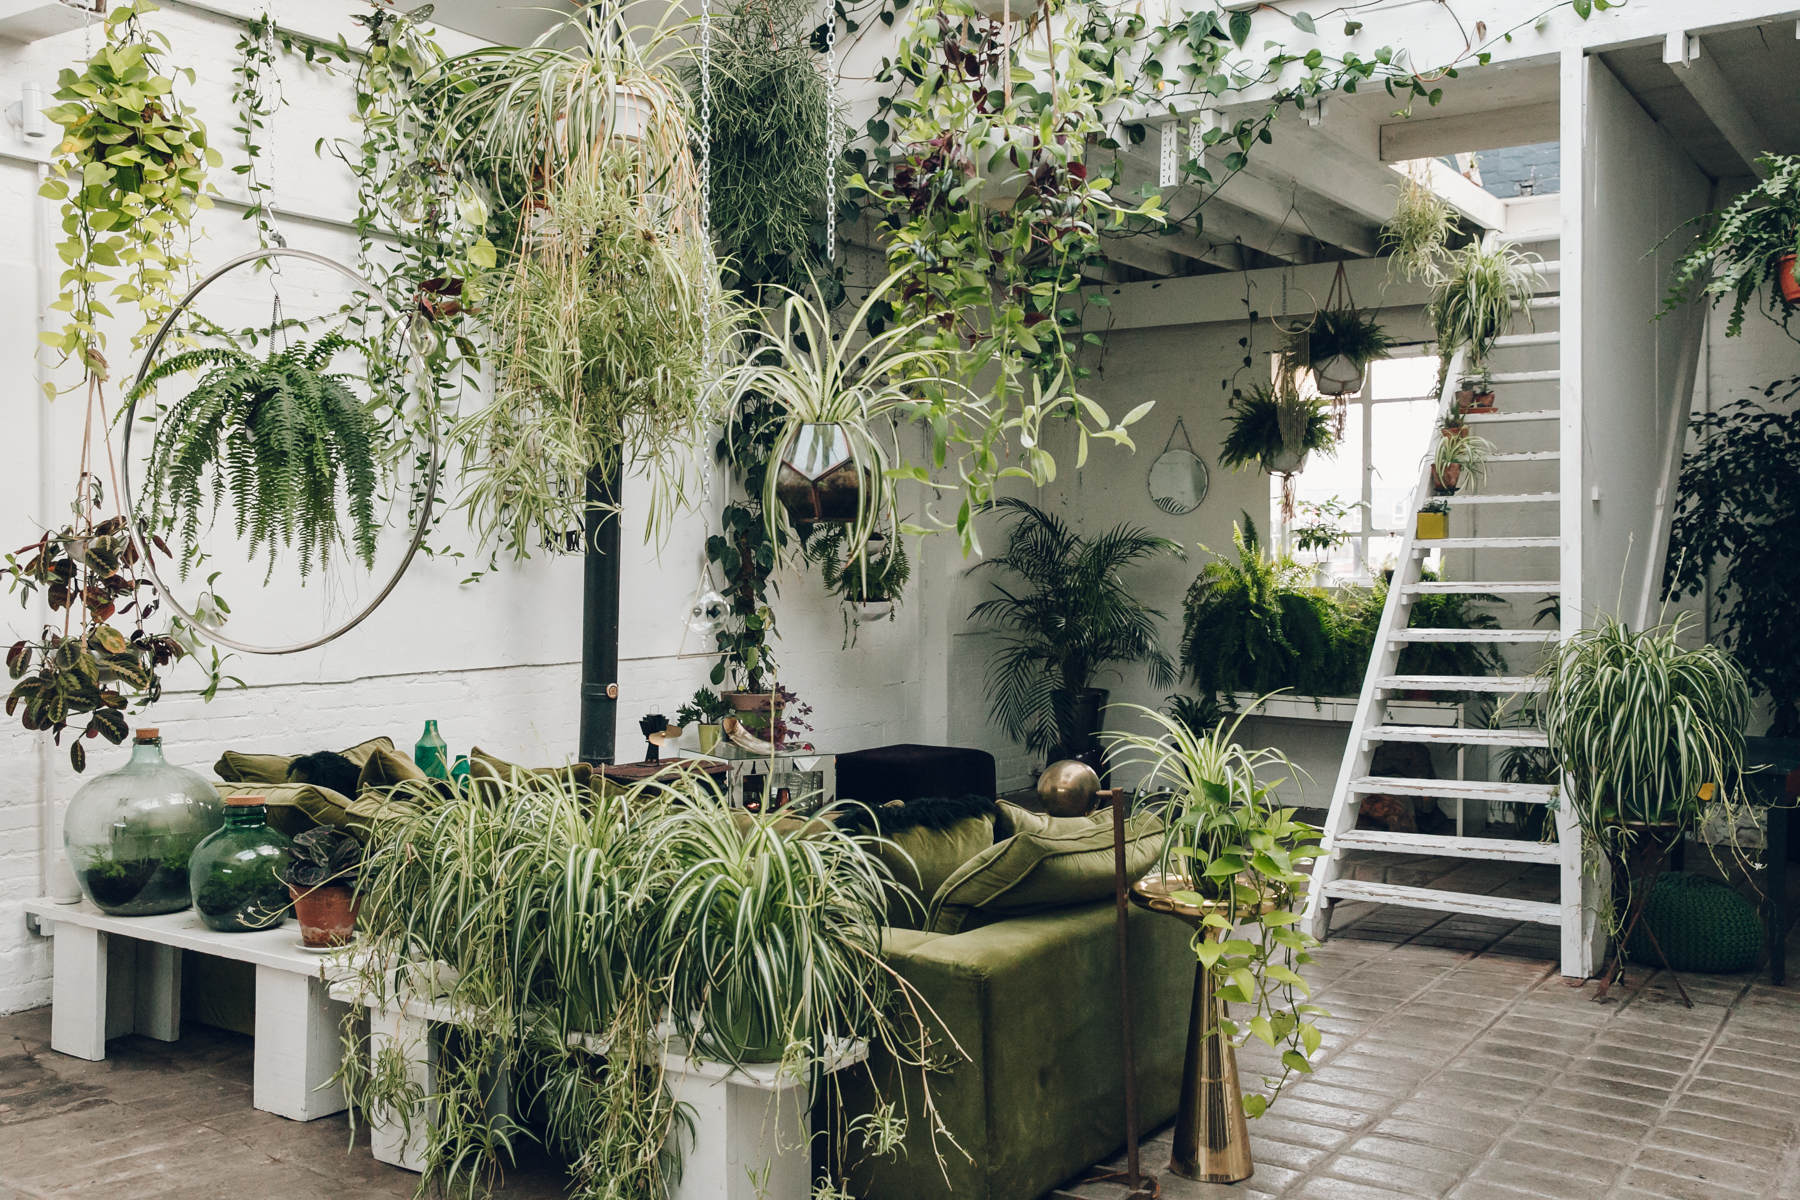 A plant-filled paradise at Clapton Tram in London.